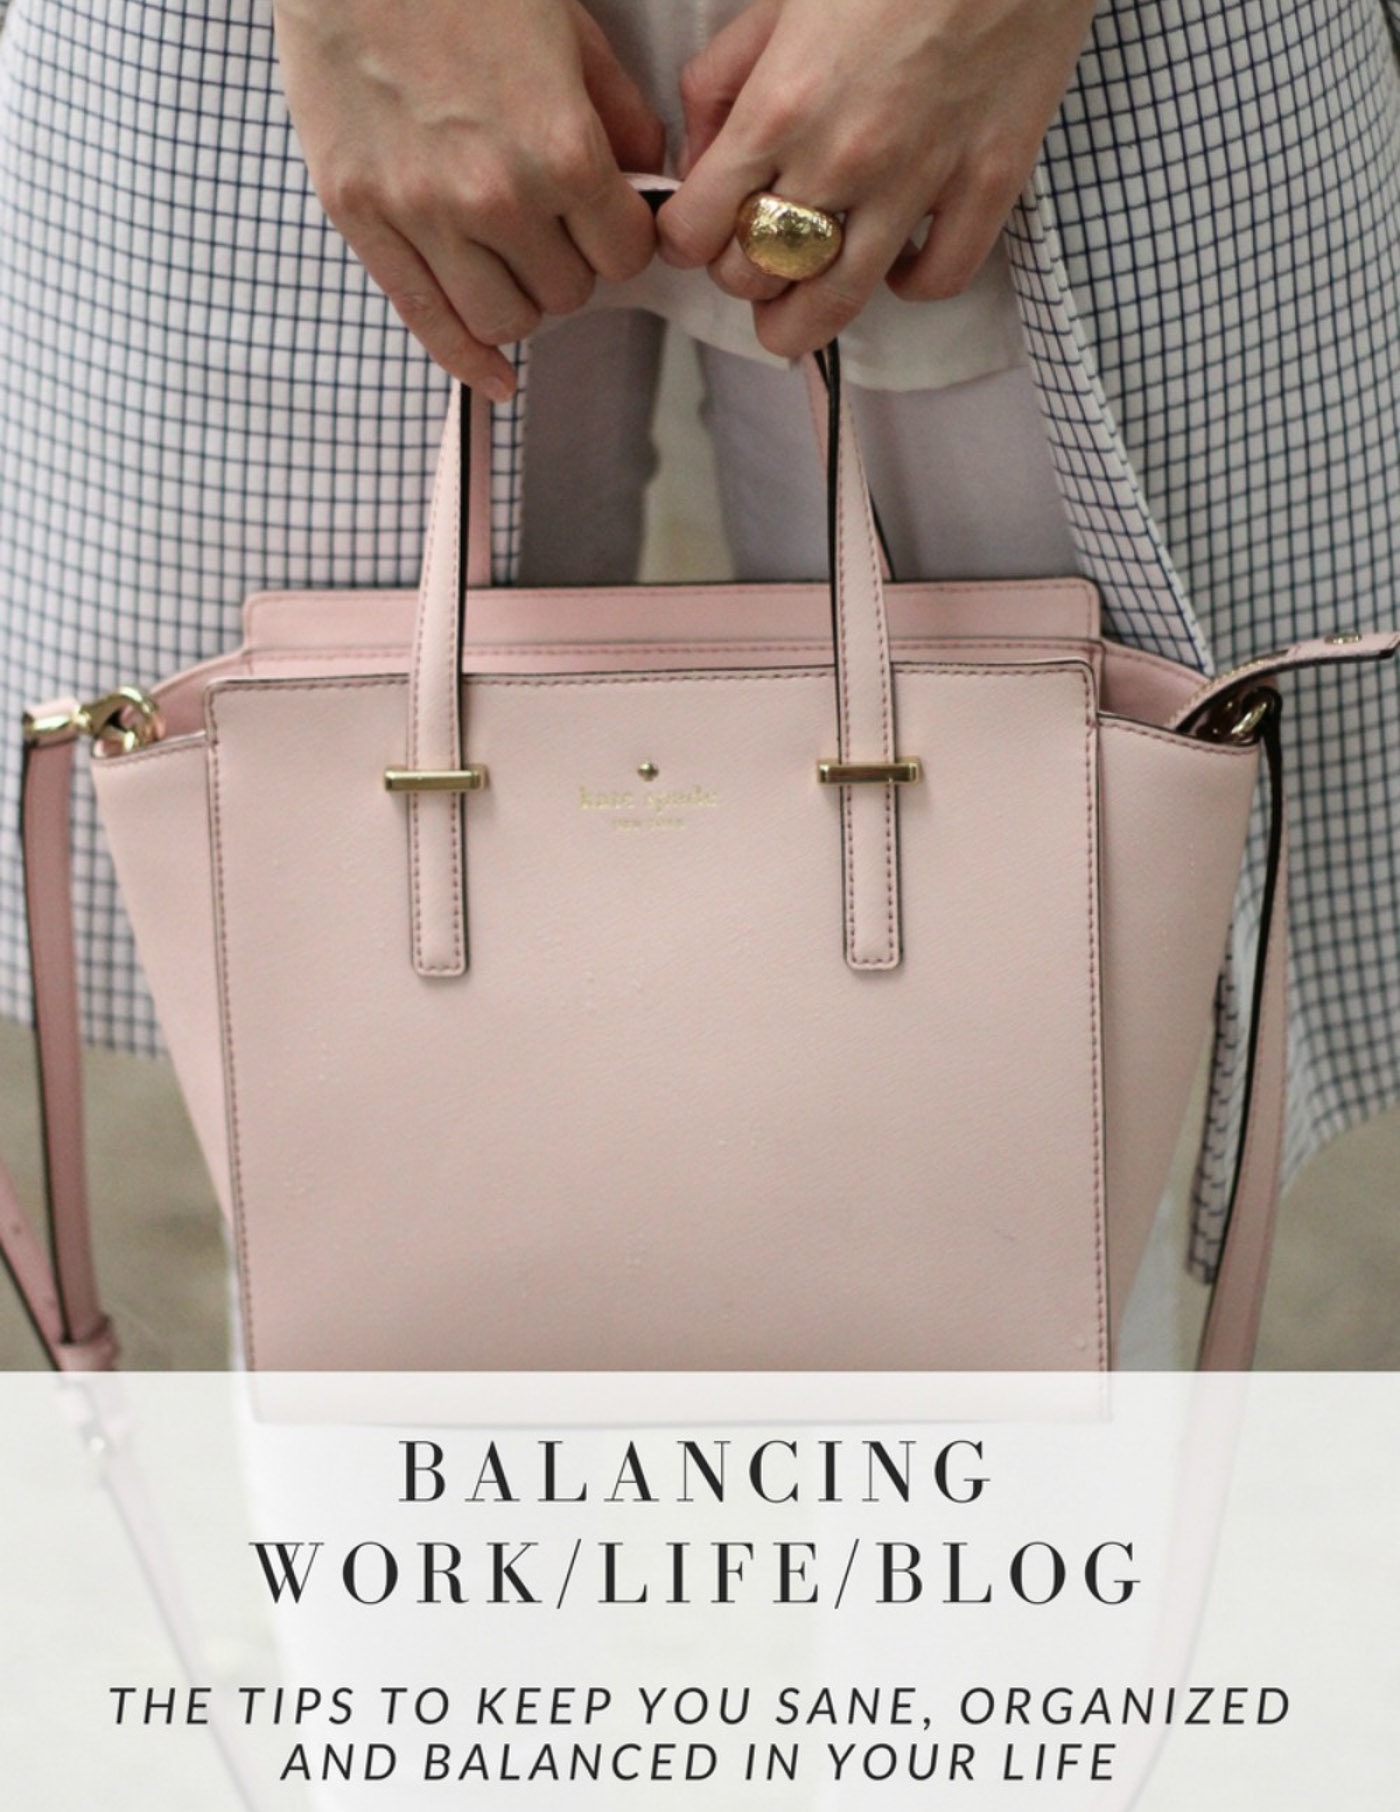 Balancing work life and your blog